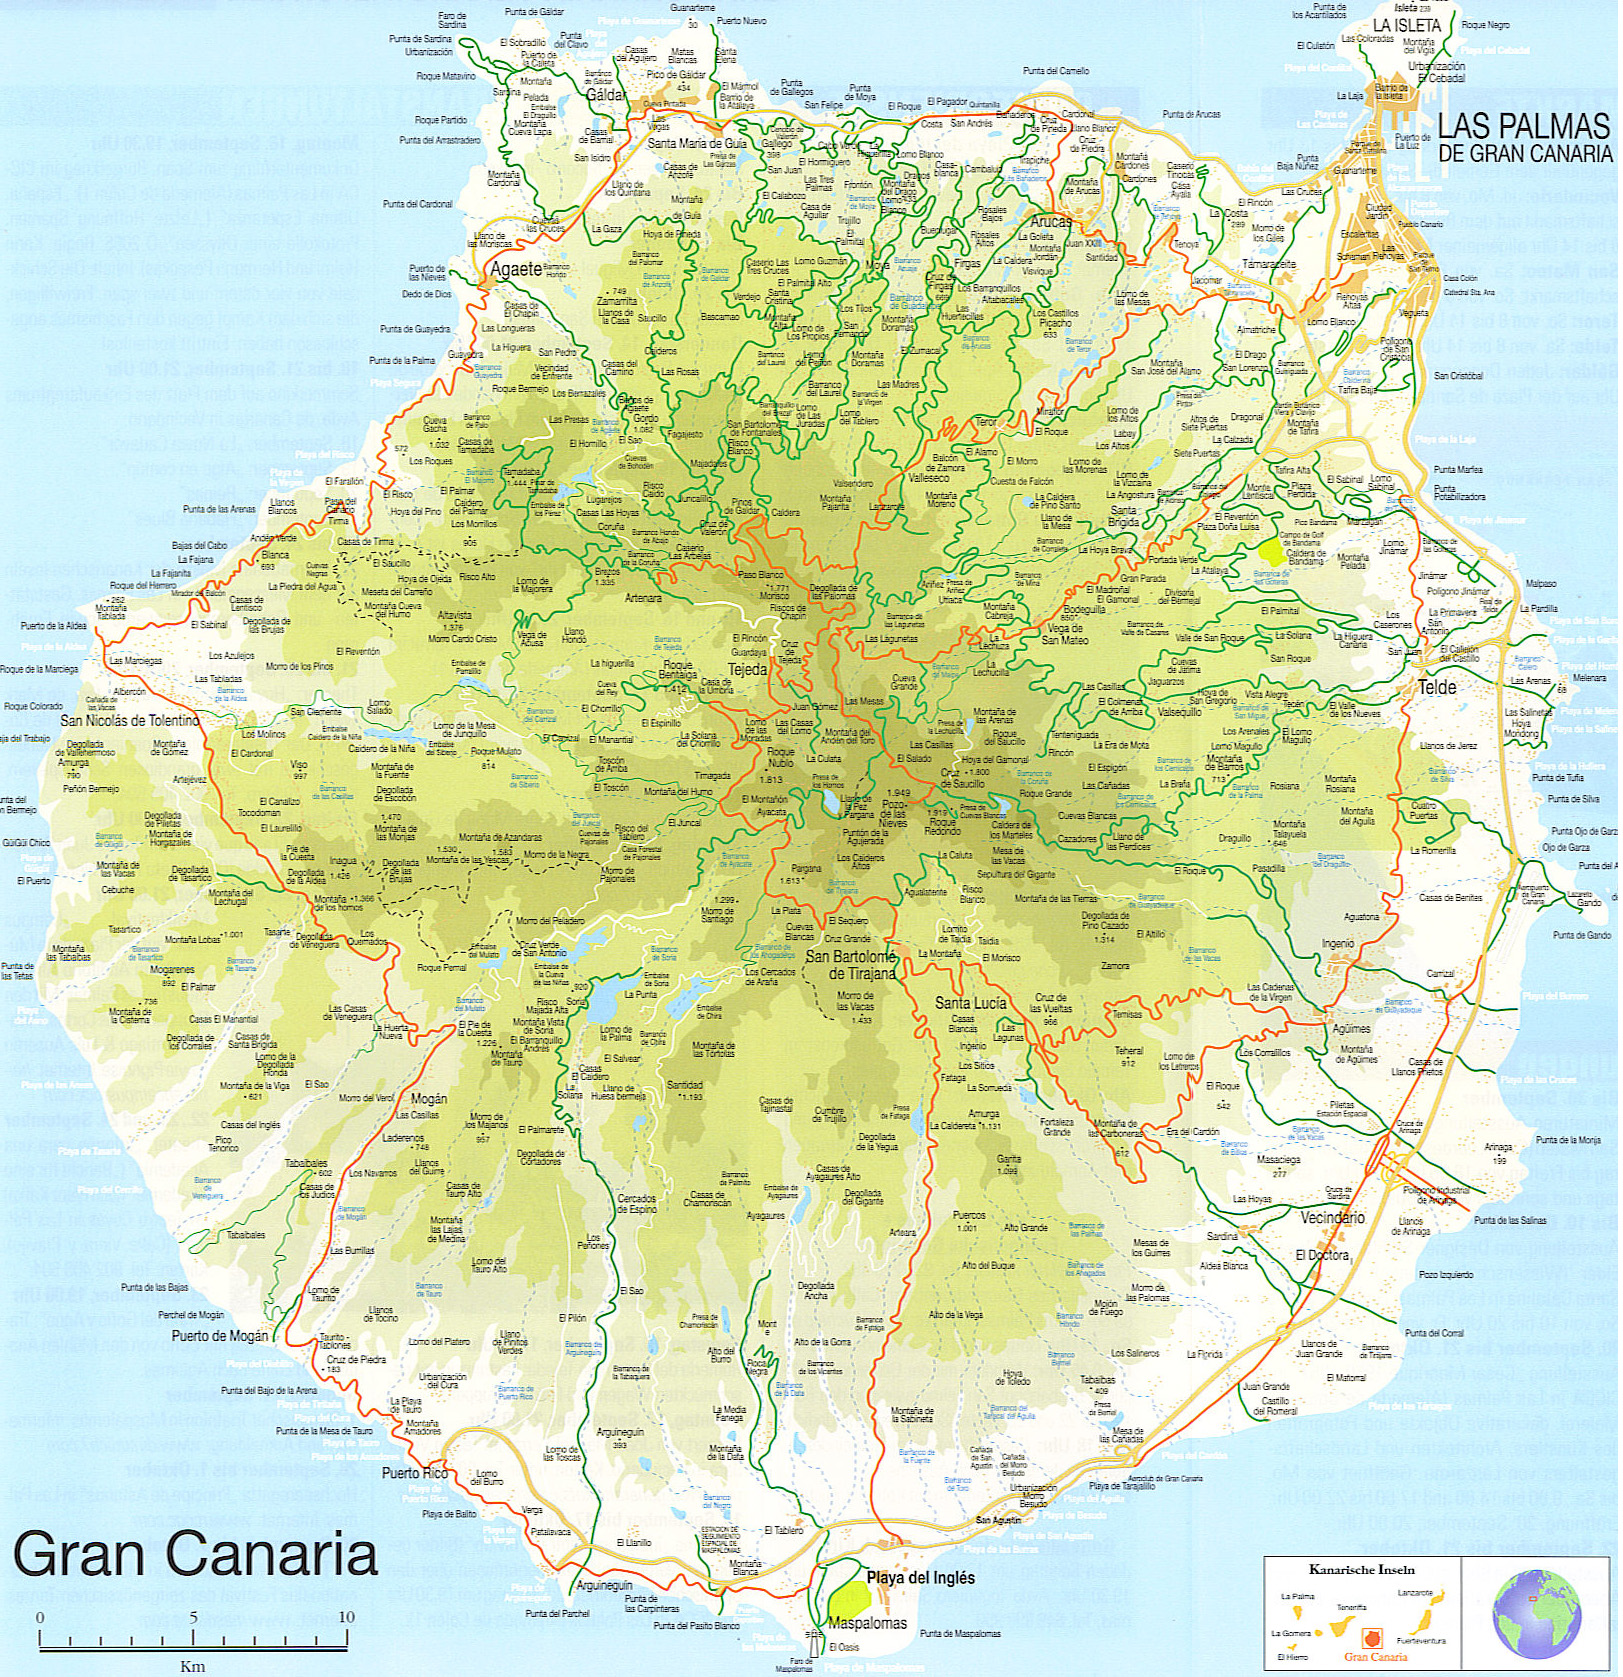 Books & Maps about Gran Canaria & Info about Gran Canaria ... on hammamet tunisia map, puerto rico carnival, fuerteventura map, costa adeje tenerife map, lloret de mar map, puerto rico museums, playa del ingles gran canaria map, maspalomas map, puerto rico nature, puerto rico night clubs, puerto rico beach resorts, puerto rico weather, puerto rico bar and grill, puerto rico marinas, puerto rico news today, puerto rico fishing, puerto rico home, puerto rico photography,